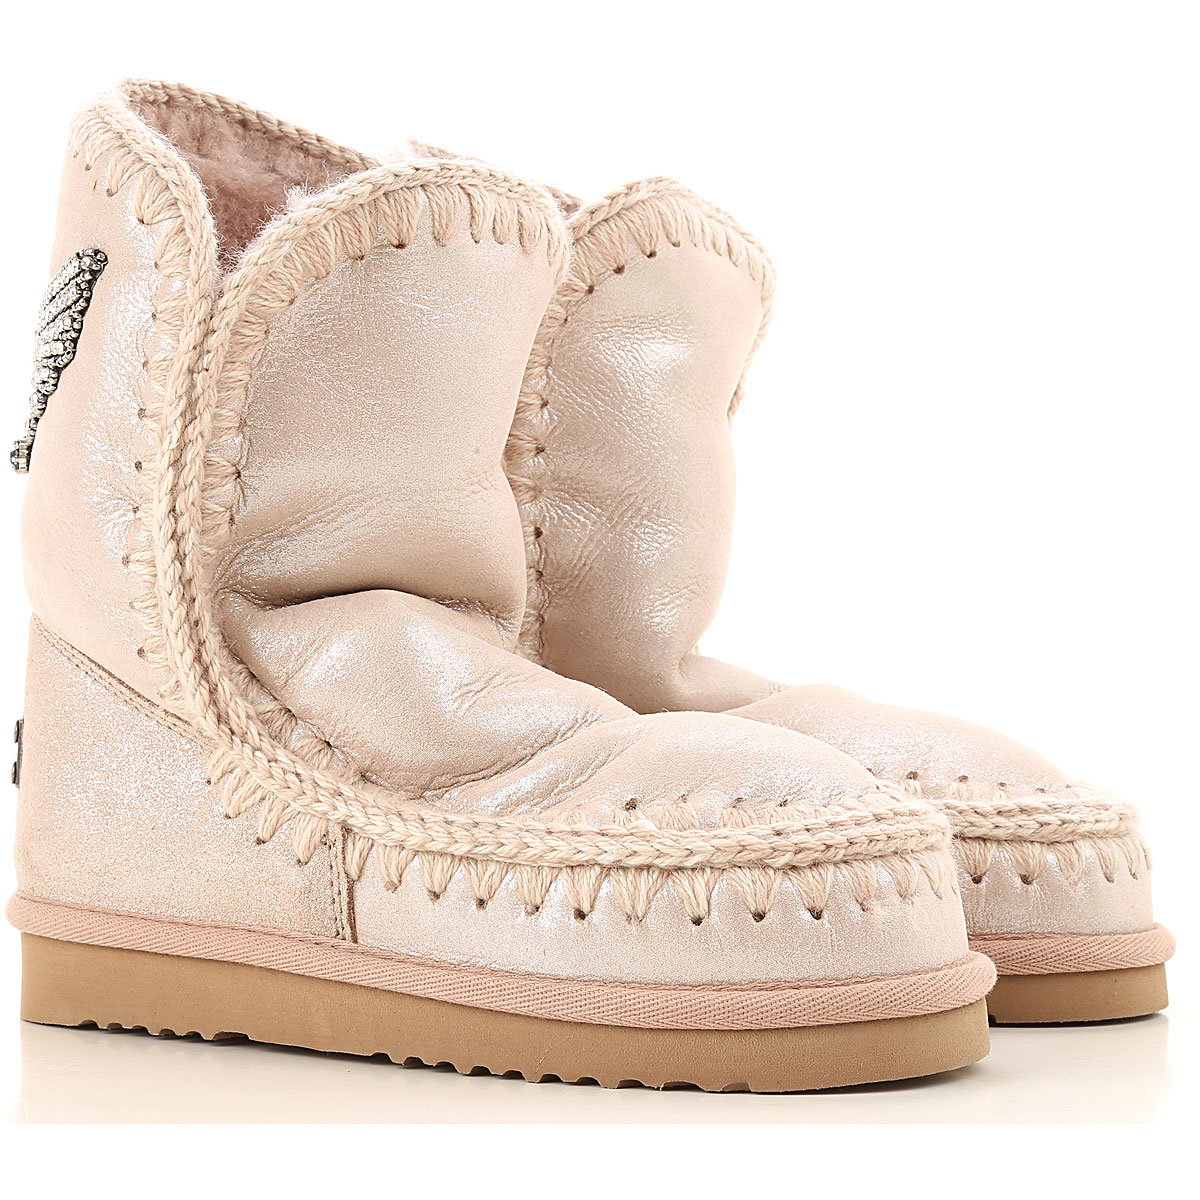 Mou Boots for Women, Booties On Sale, Rose, Suede leather, 2019, EUR 36 - UK 3 - USA 5.5 EUR 38 - UK 5 - USA 7.5 EUR 39 - UK 6 - USA 8.5 EUR 40 - UK 7